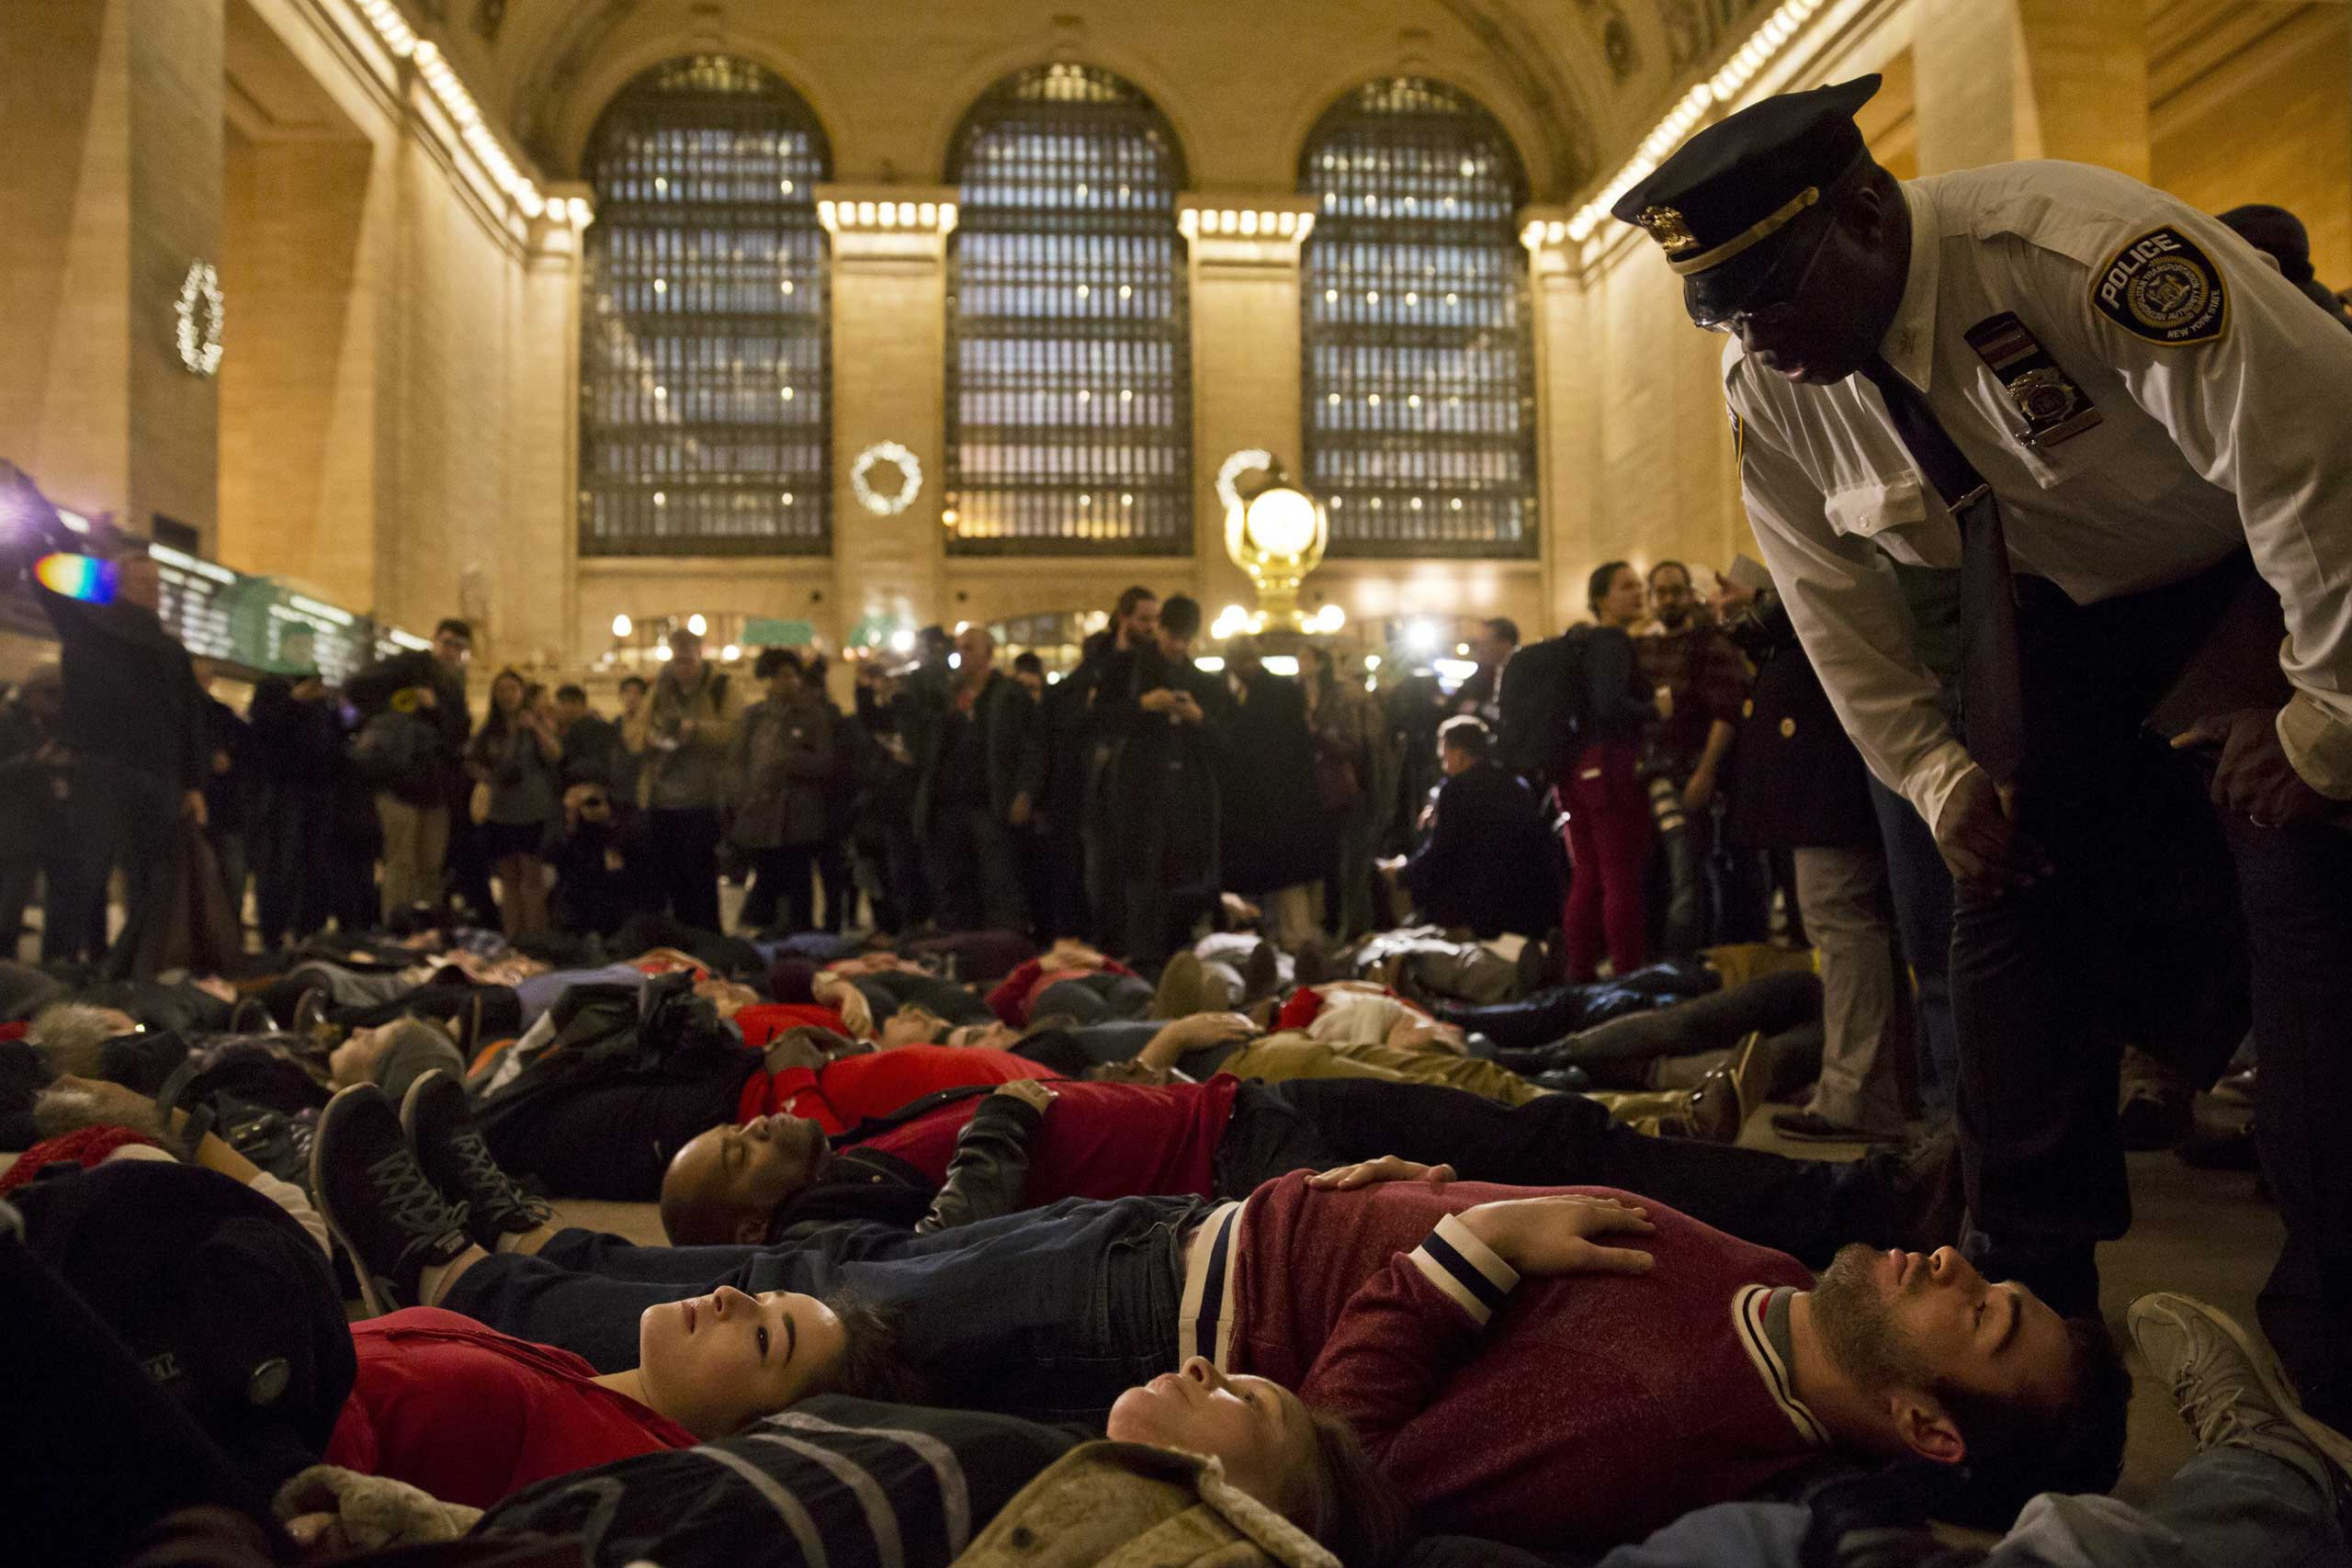 United States: Protests over the grand jury's decision not to bring charges in the death of Eric Garner A 'die-in' in New York's Grand Central Terminal, Dec. 3, 2014.